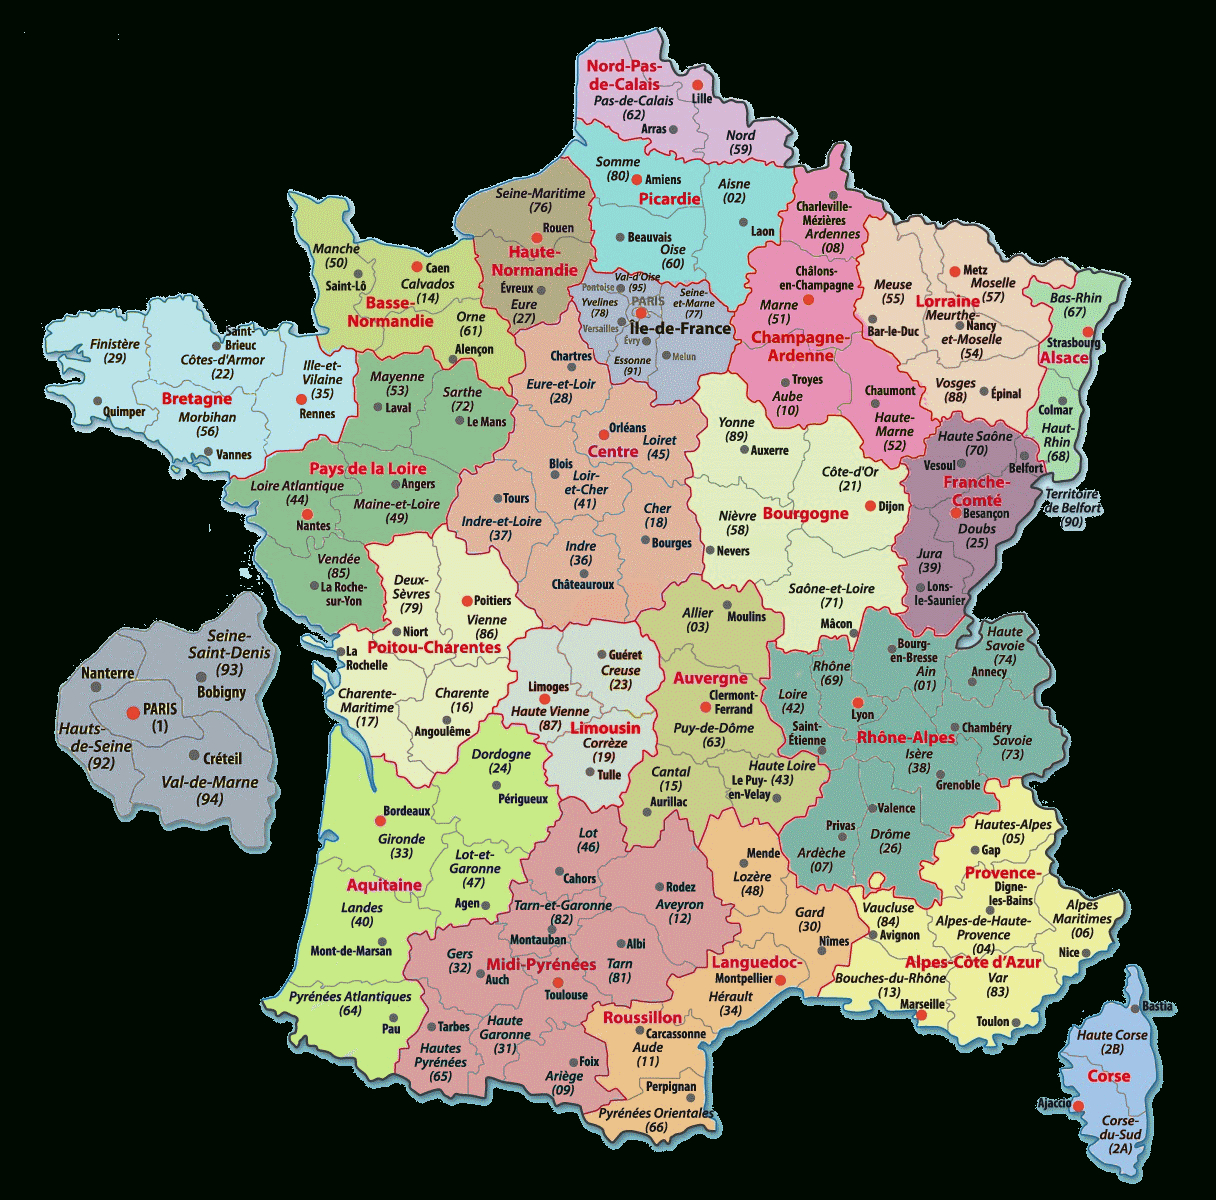 Carte De France Departements : Carte Des Départements De France destiné Listes Des Départements Français